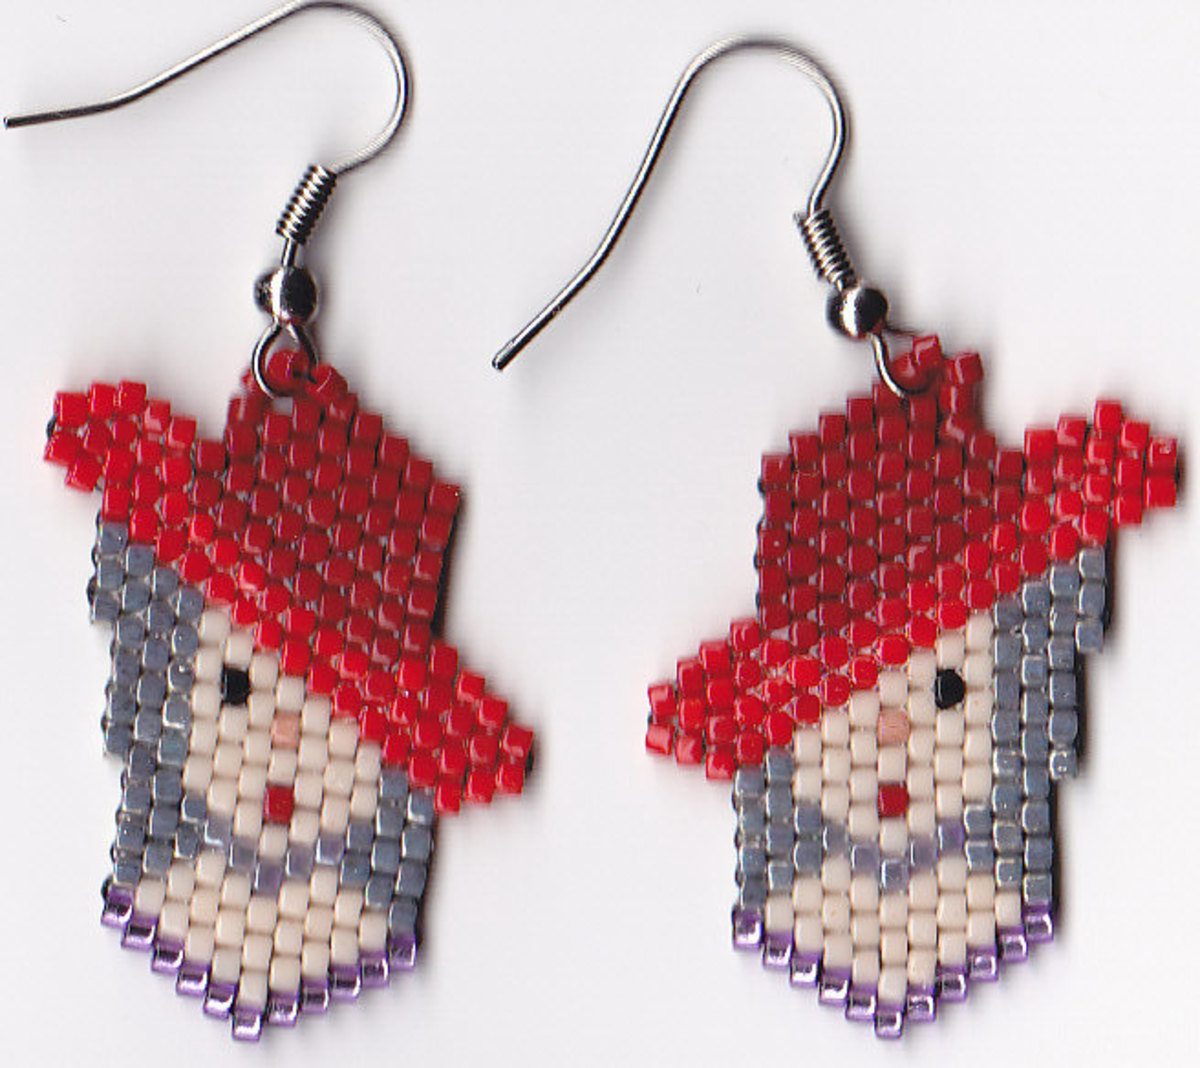 Beaded Images II, by Barbara Elbe (Brick-Stitch Delica Earring Patterns) -- A Bead Pattern Book Review, Red Hat Earrings